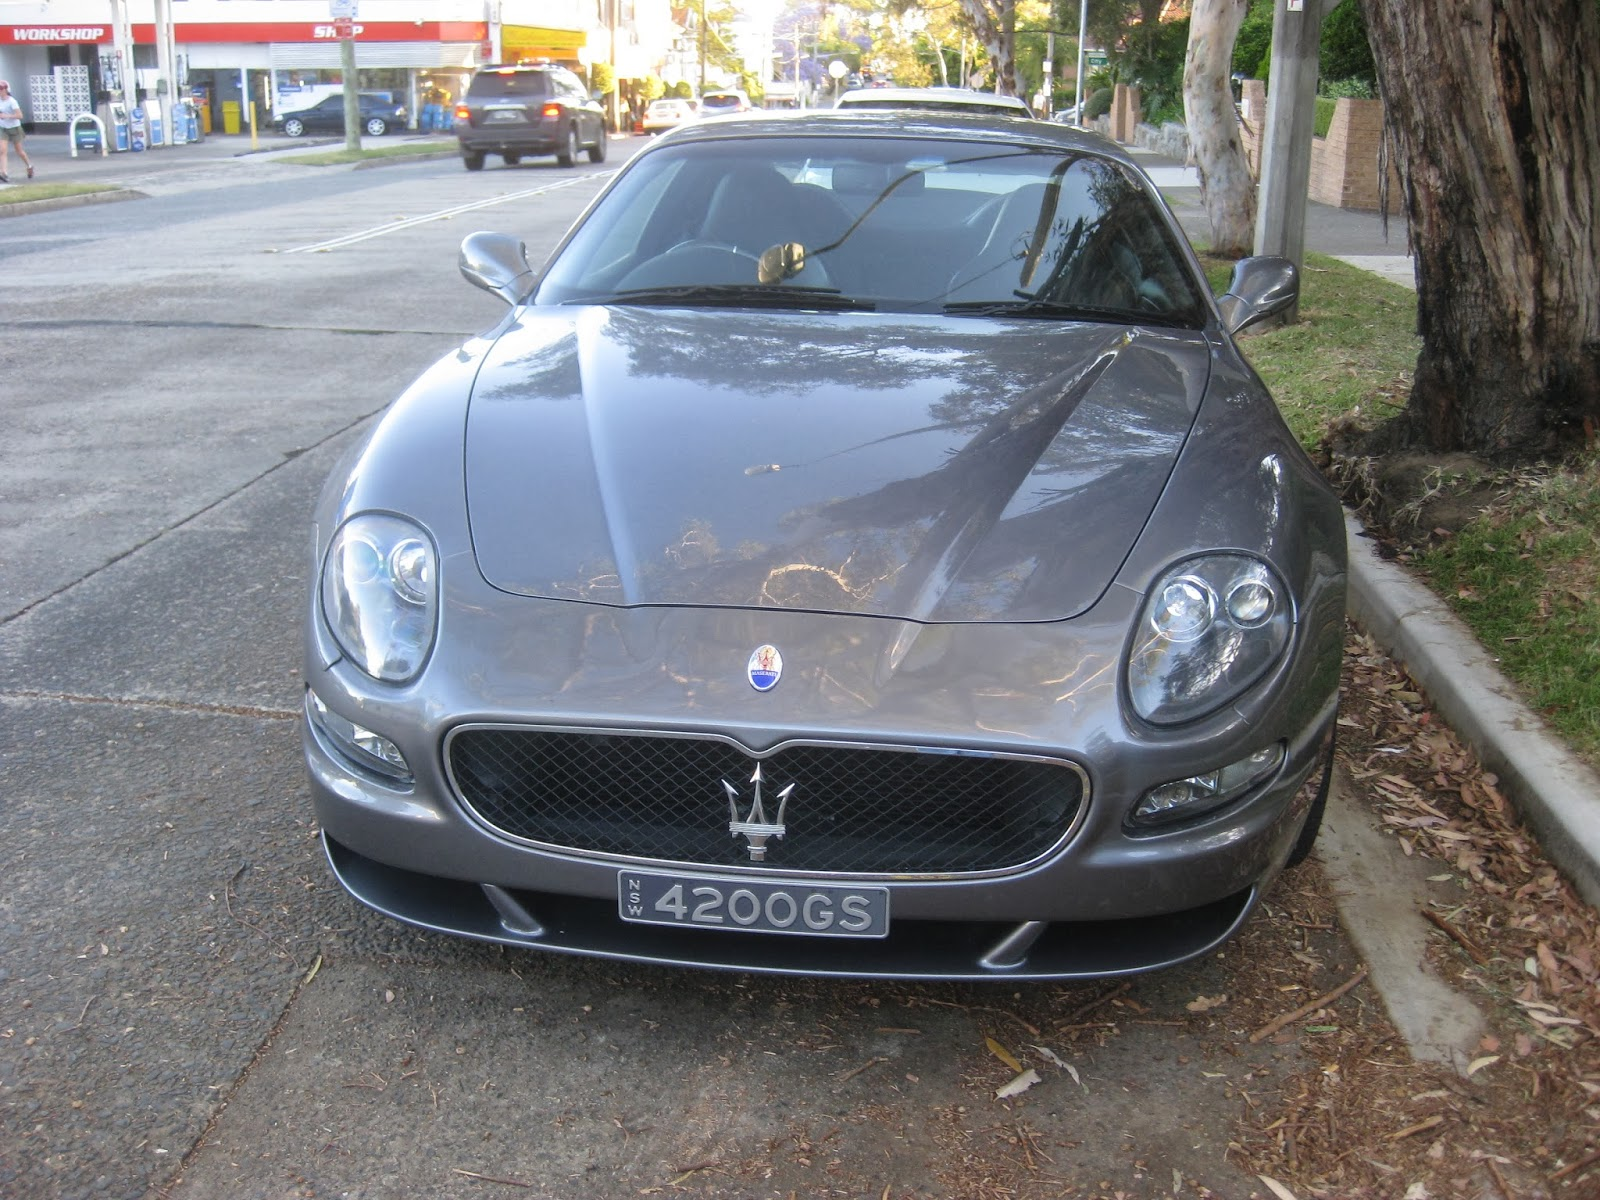 Aussie Old Parked Cars: 2004 Maserati GranSport Coupe